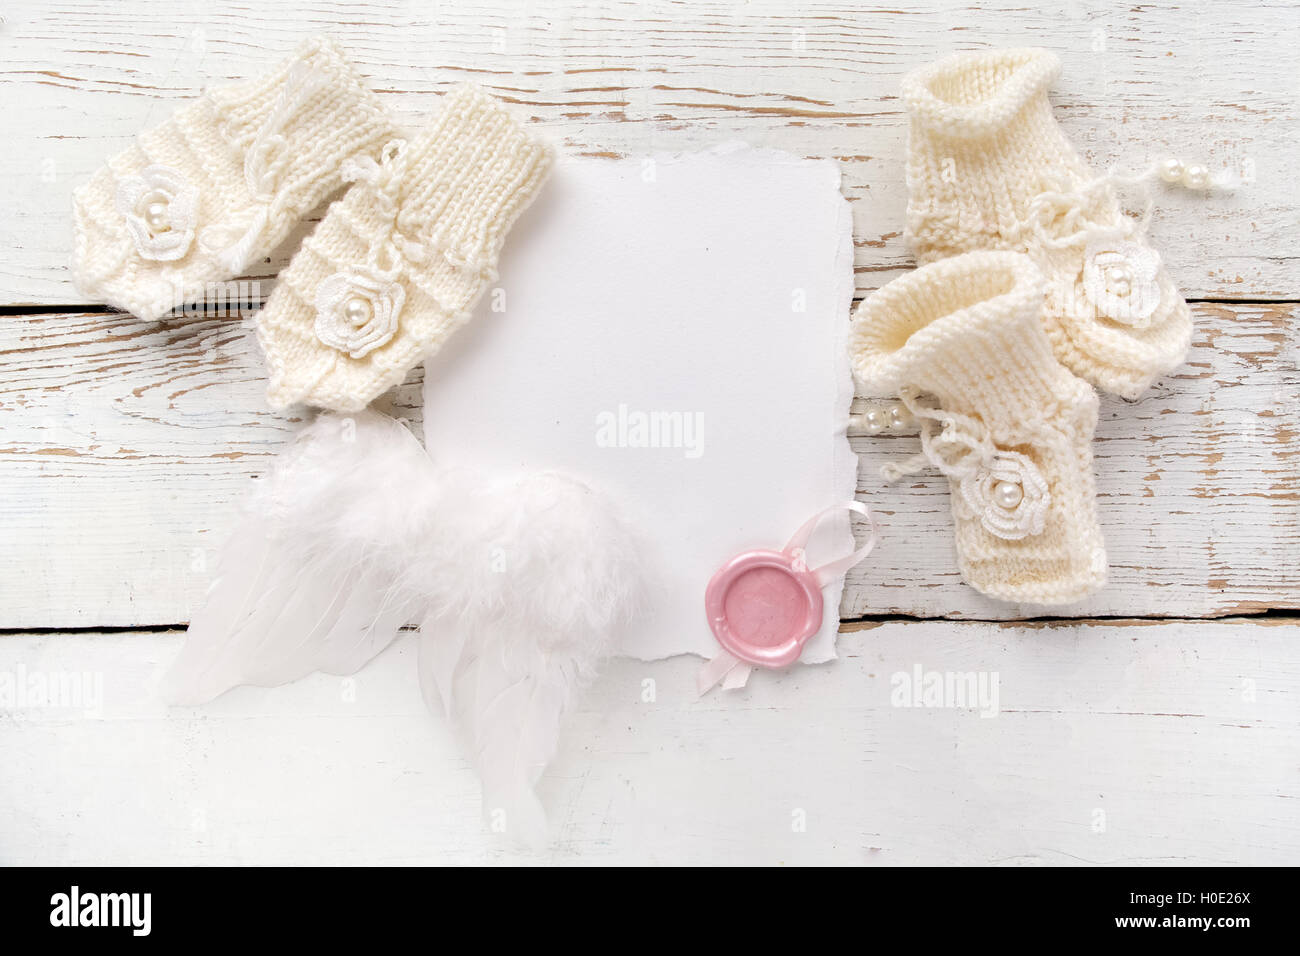 New Born Or Baptism Greeting Card Blank With Baby Girl Shoes